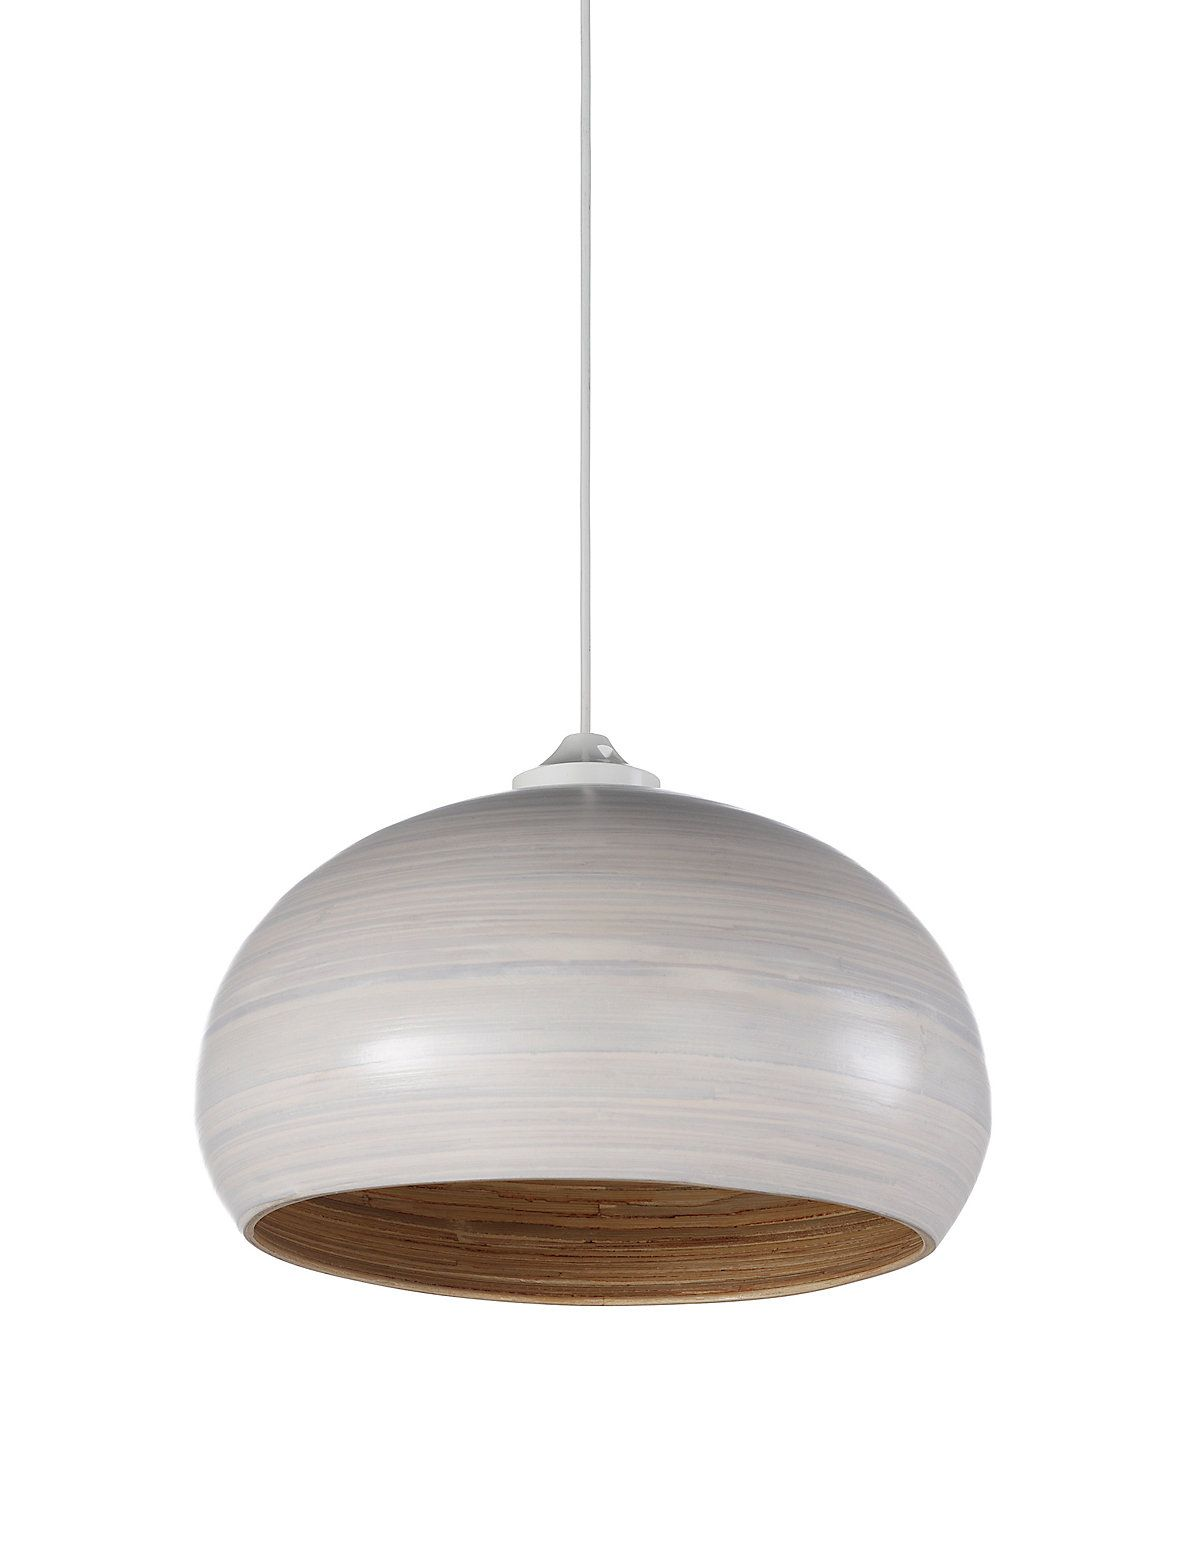 Bamboo Ceiling Lamp Shade Ceiling Lamp Shades Bamboo Ceiling Floor Lamp